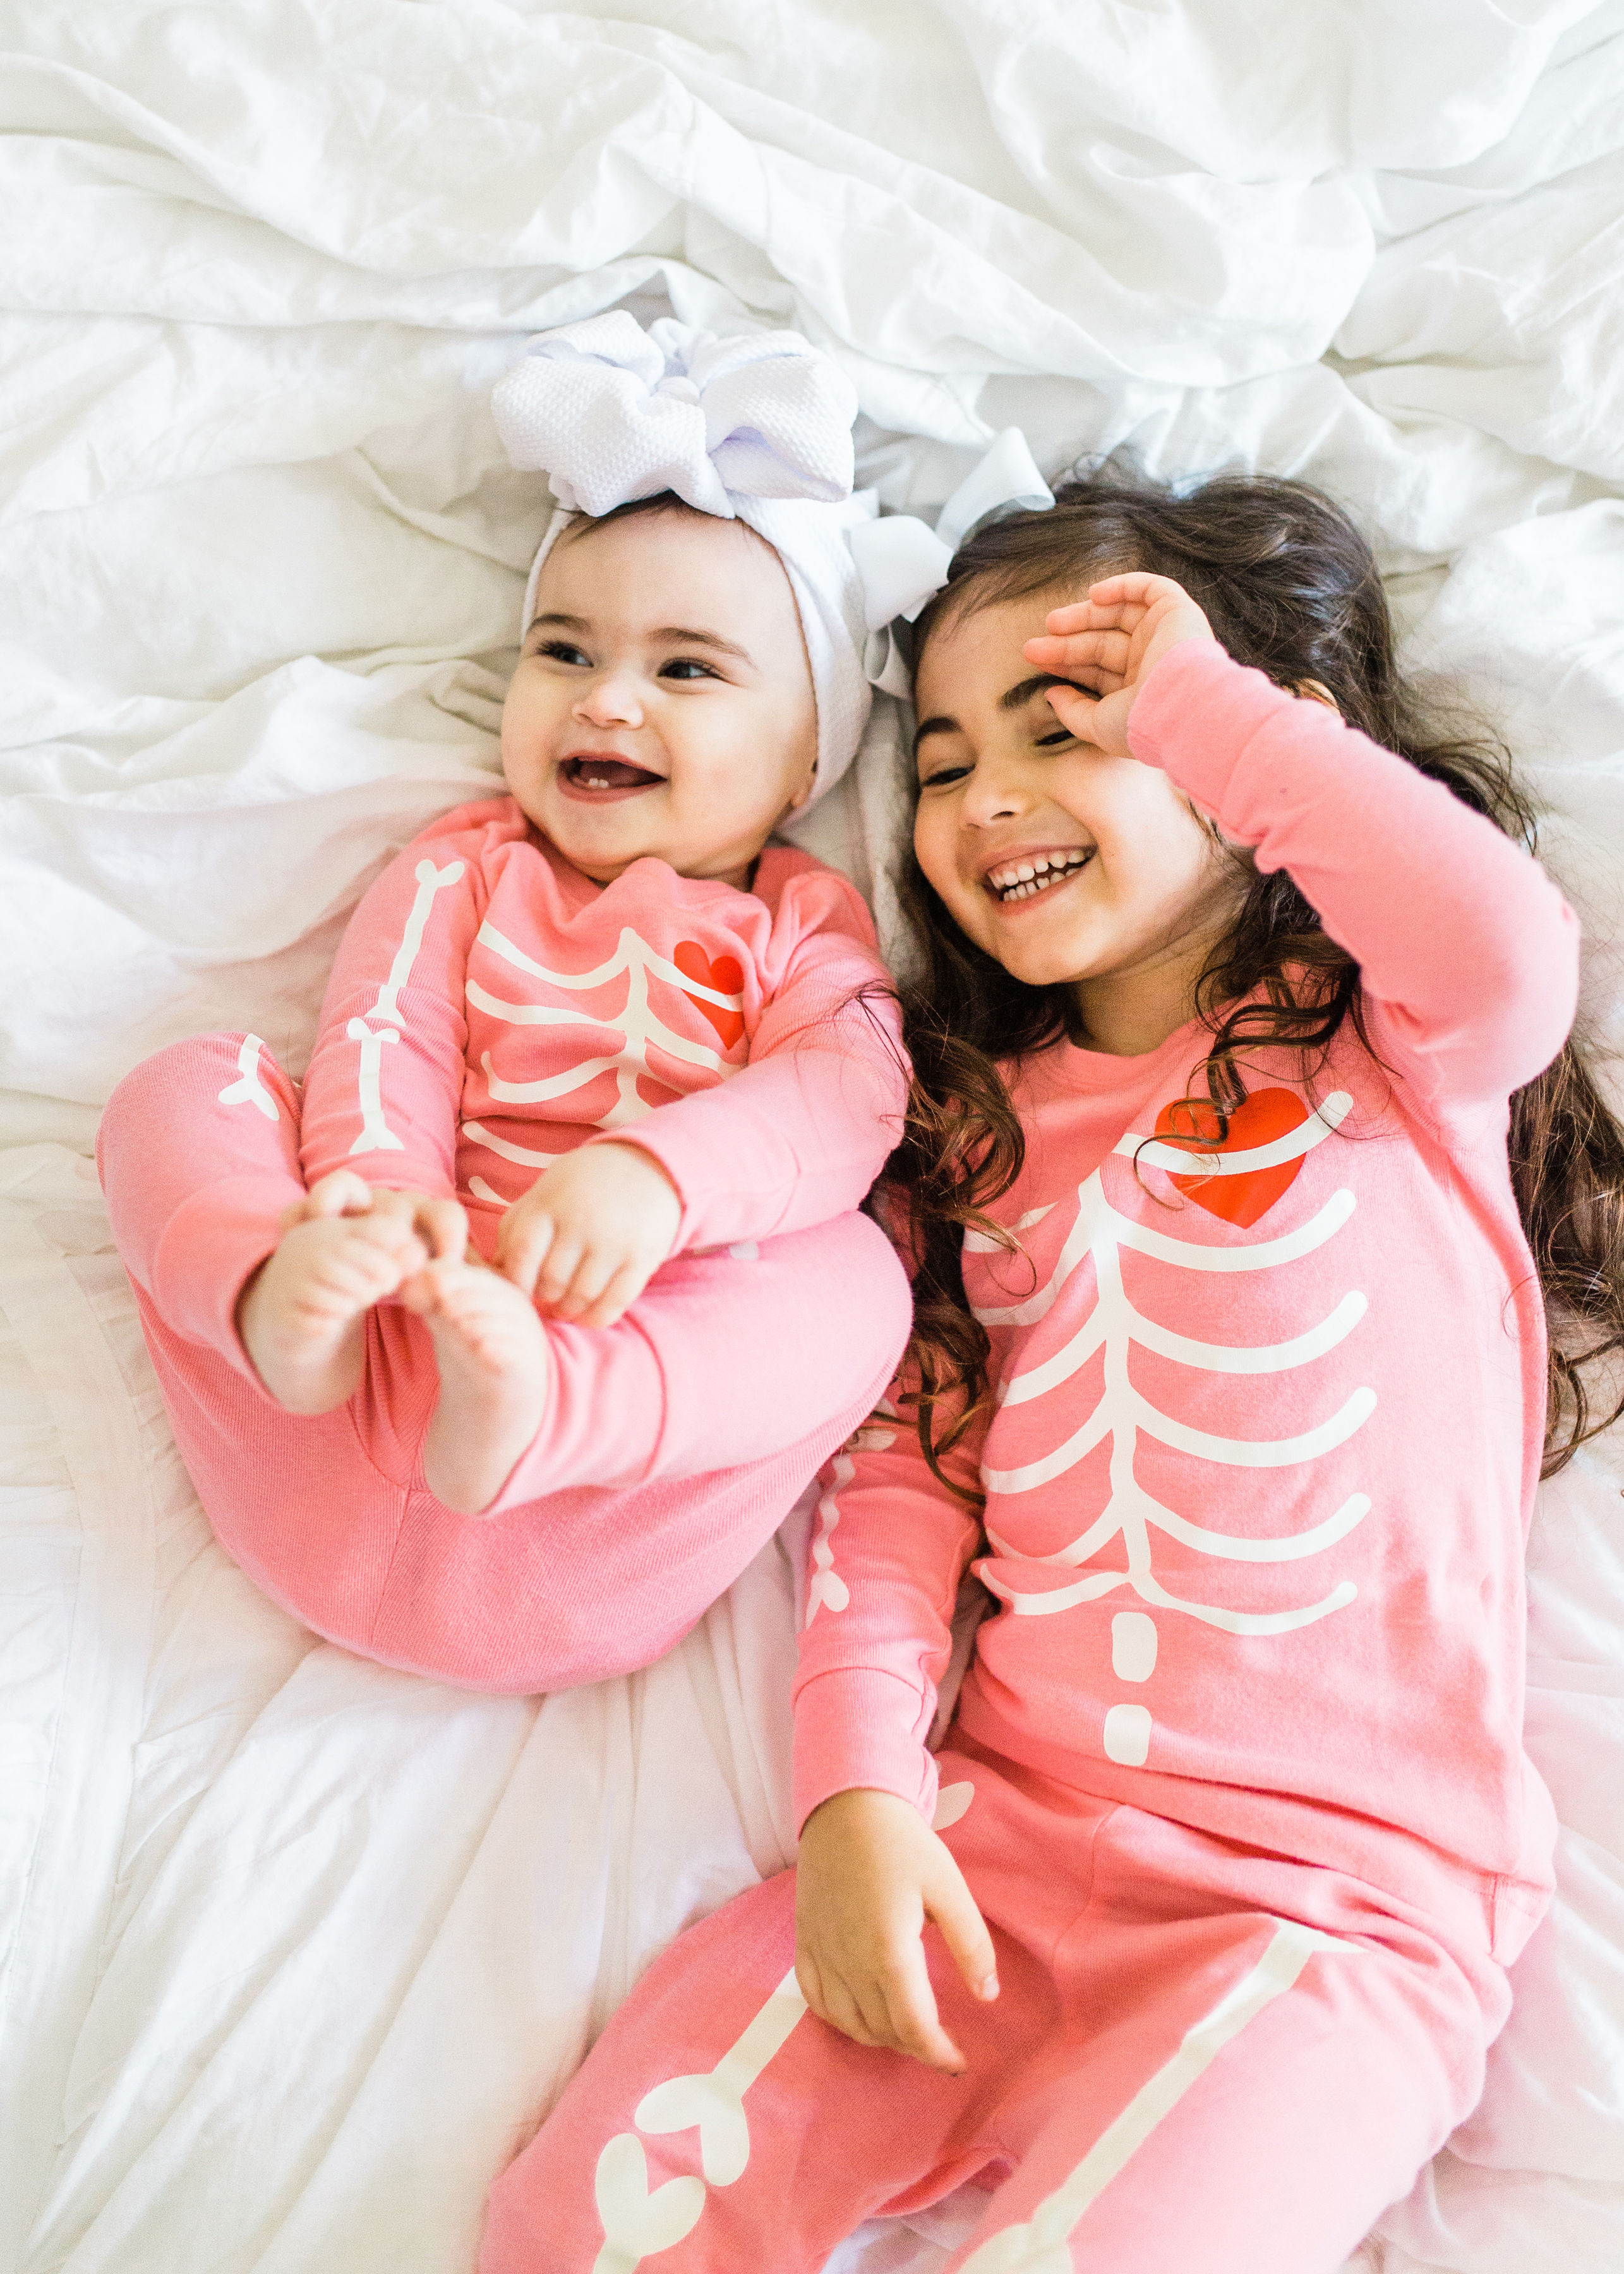 Looking to start a few fun Halloween family traditions? We're sharing our favorites, including a roundup of the best Halloween movies for kids, the cutest matching Halloween pajamas for your little ones, and plenty of spooky party inspiration and recipes! Click through for the details. #halloween #halloweenpajamas #halloweenideas #halloweentraditions #familyhalloween #kidshalloween #kidshalloweenfun #kidshalloweenpajamas #babyhalloween | glitterinc.com | @glitterinc